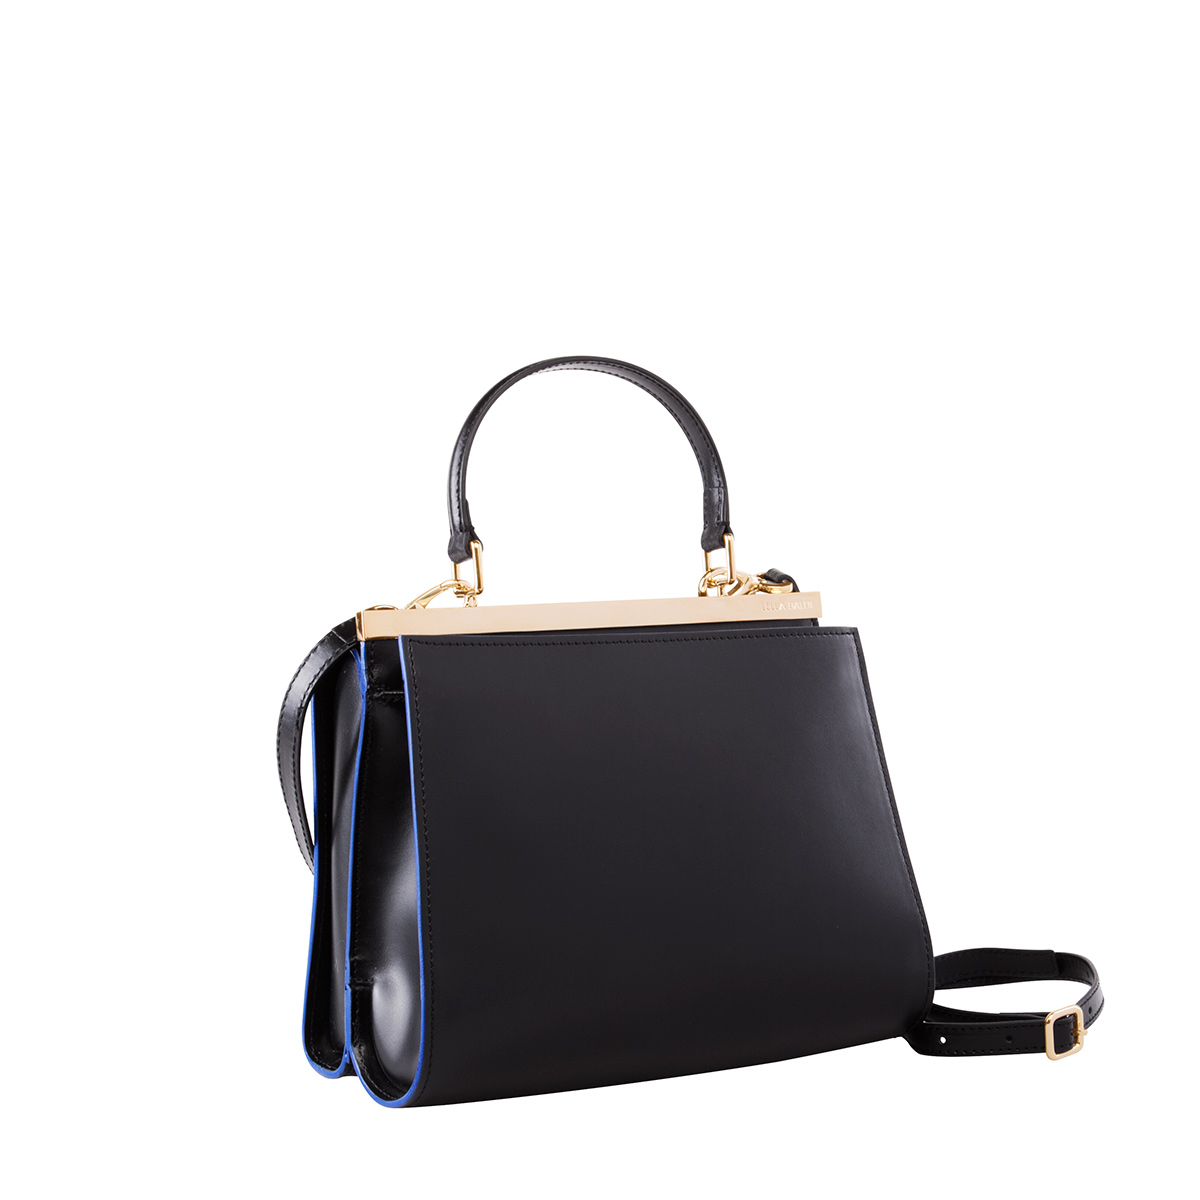 Wavy Bag Shoulder, Black-Blue